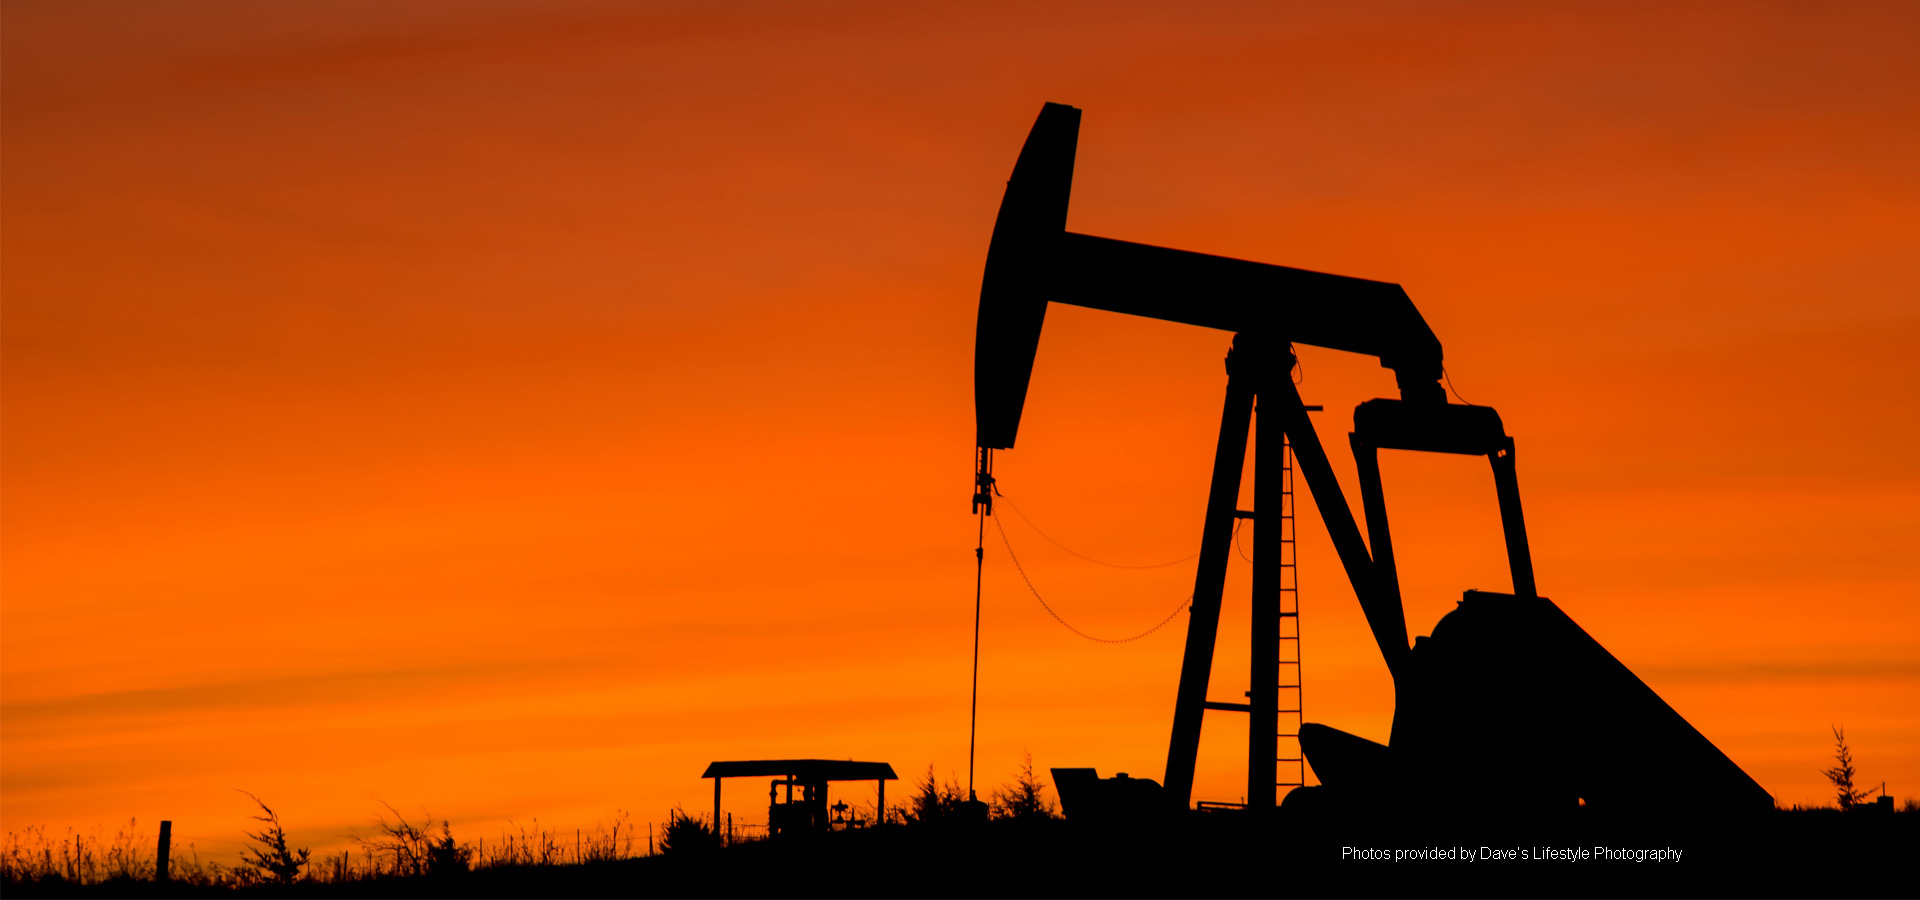 PumpJack Image by Dave's Lifestyle Photography